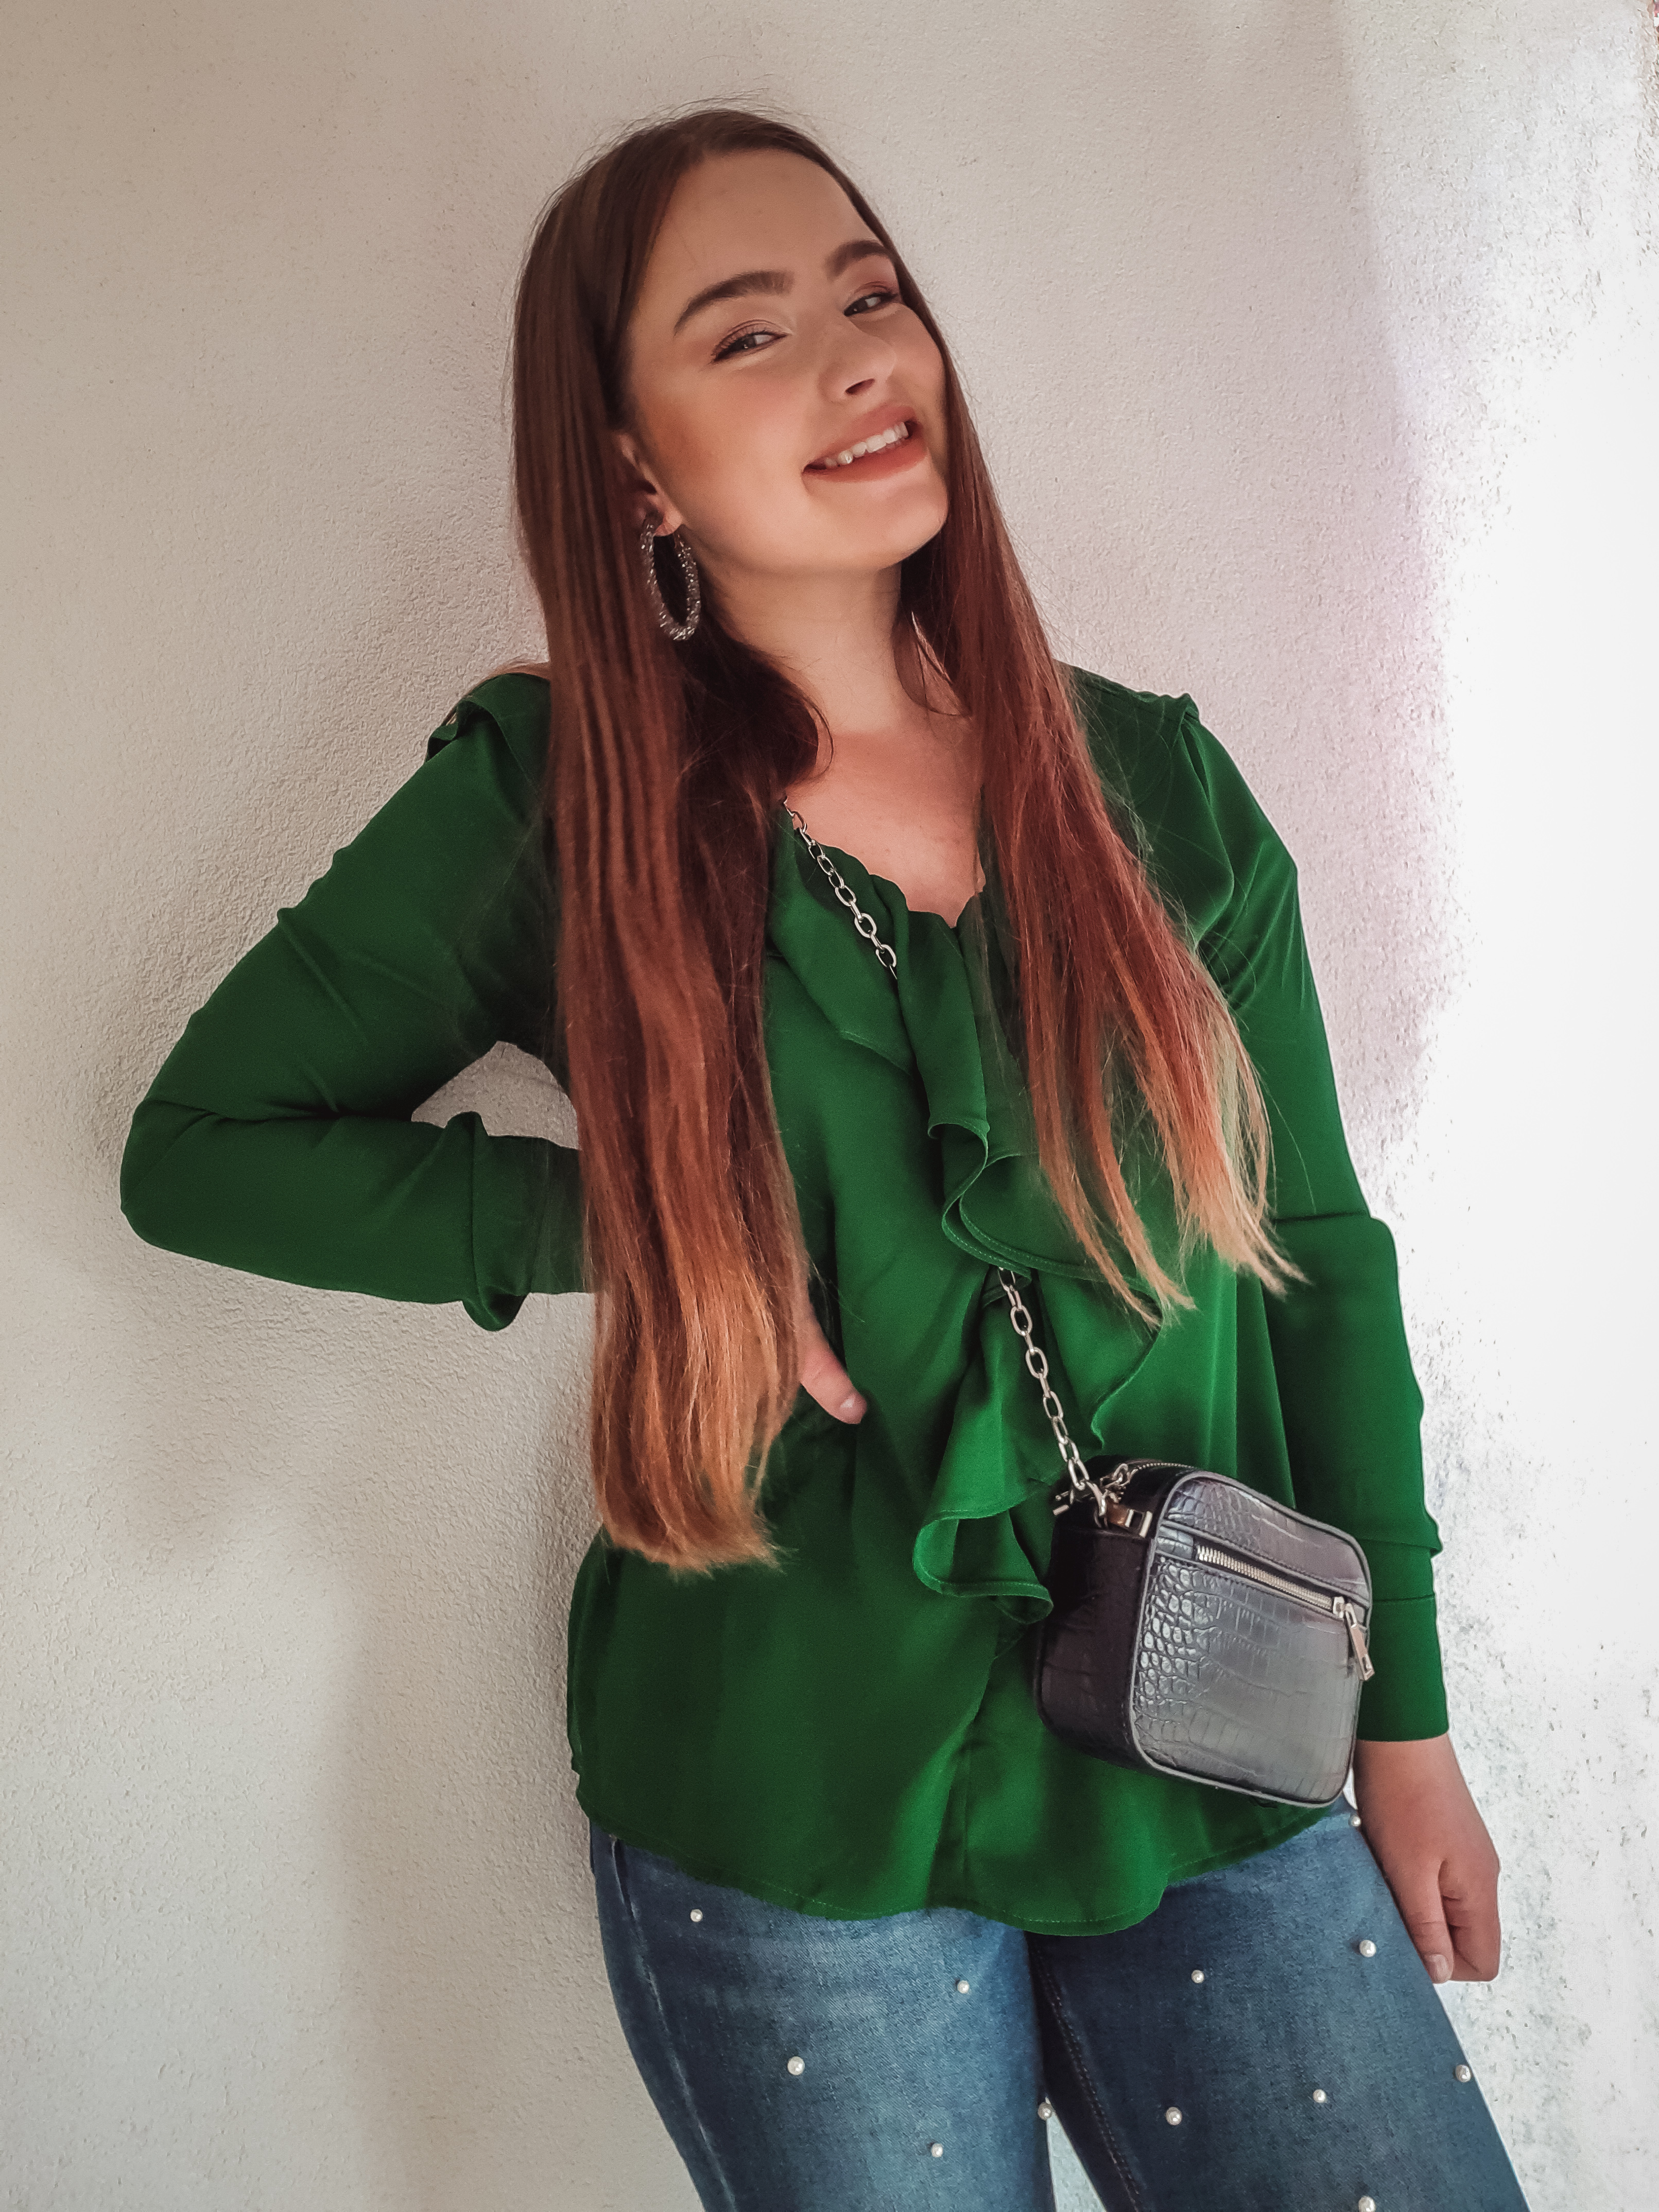 green blouse outfit livinglikev fashion blogger living like v style blogger blooming jellly